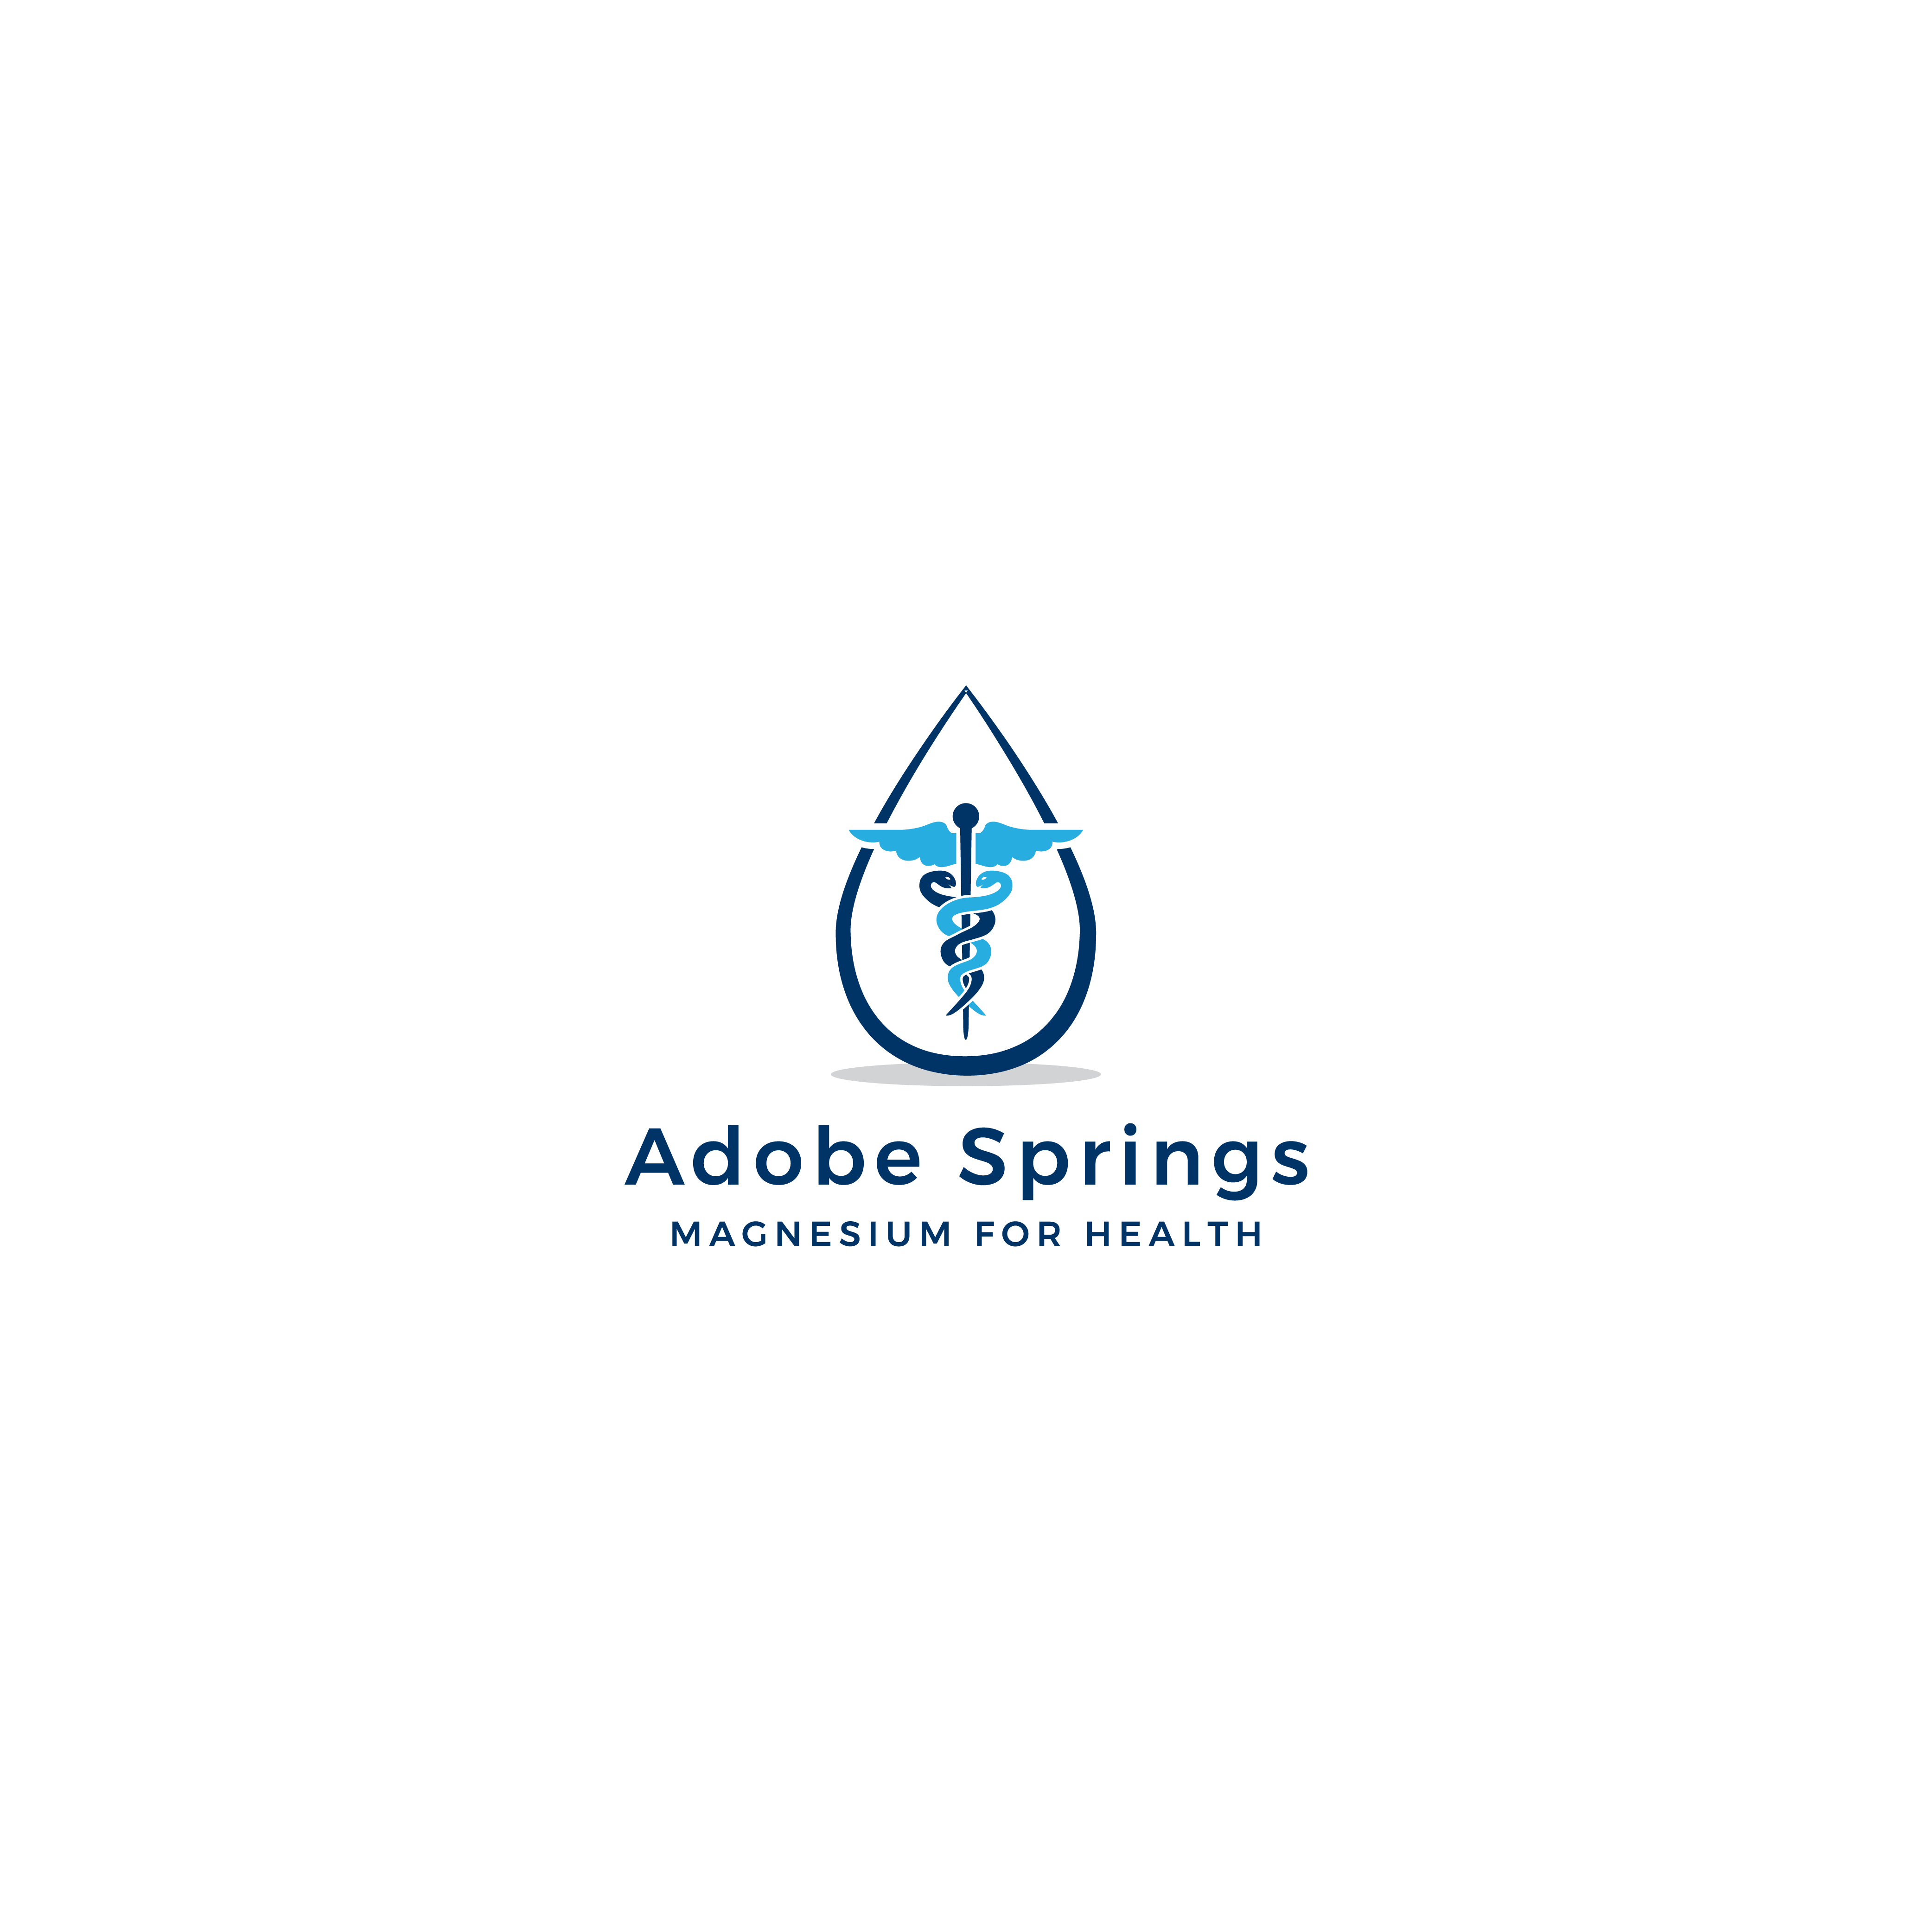 Adobe Springs Water Co needs an updated LOGO!